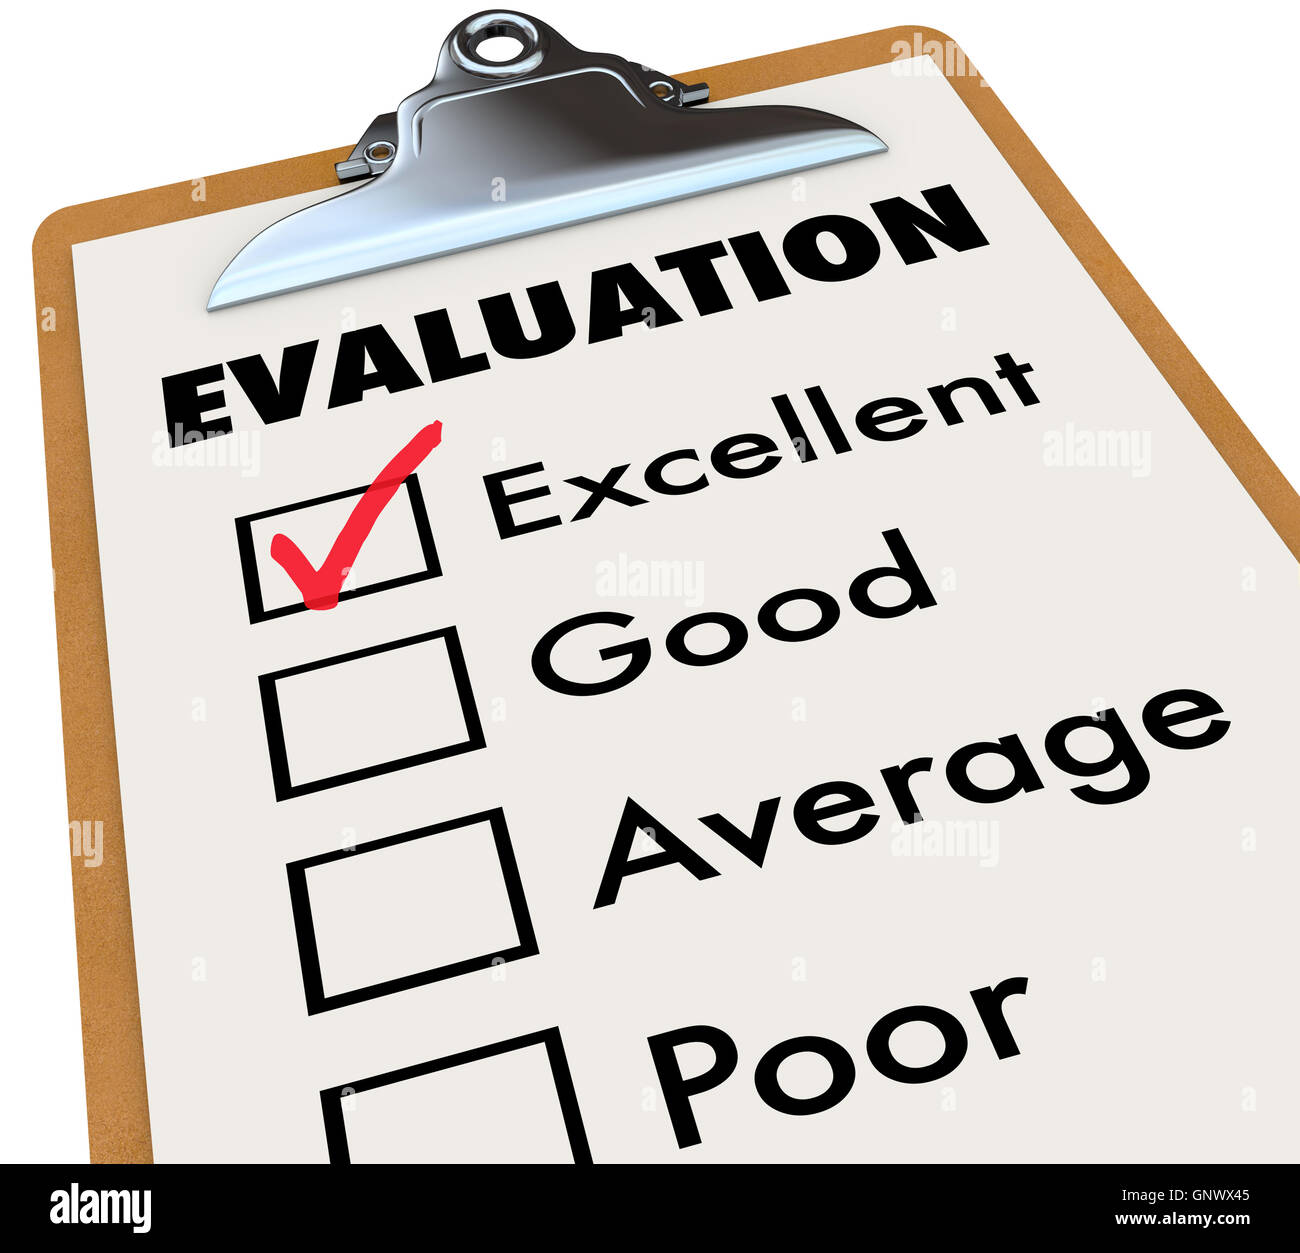 Evaluation Report Card Clipboard Assessment Grades - Stock Image